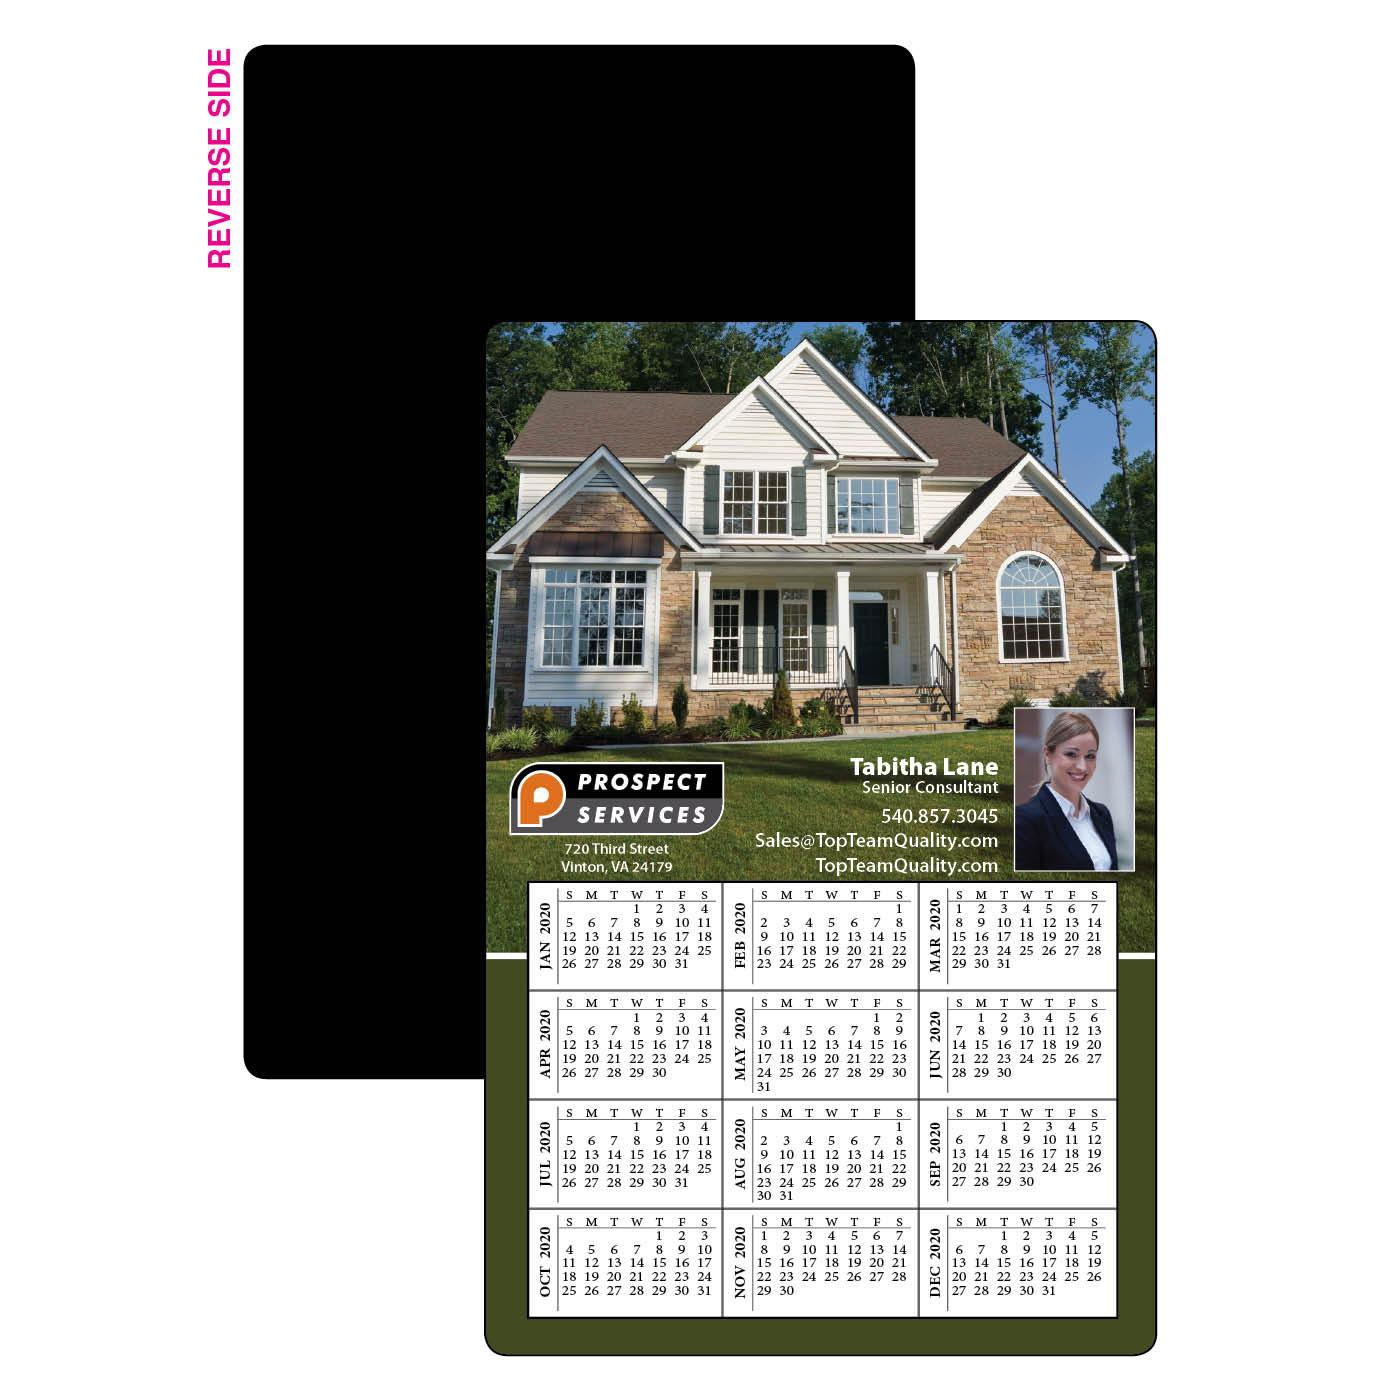 Calendar Magnet with House Image